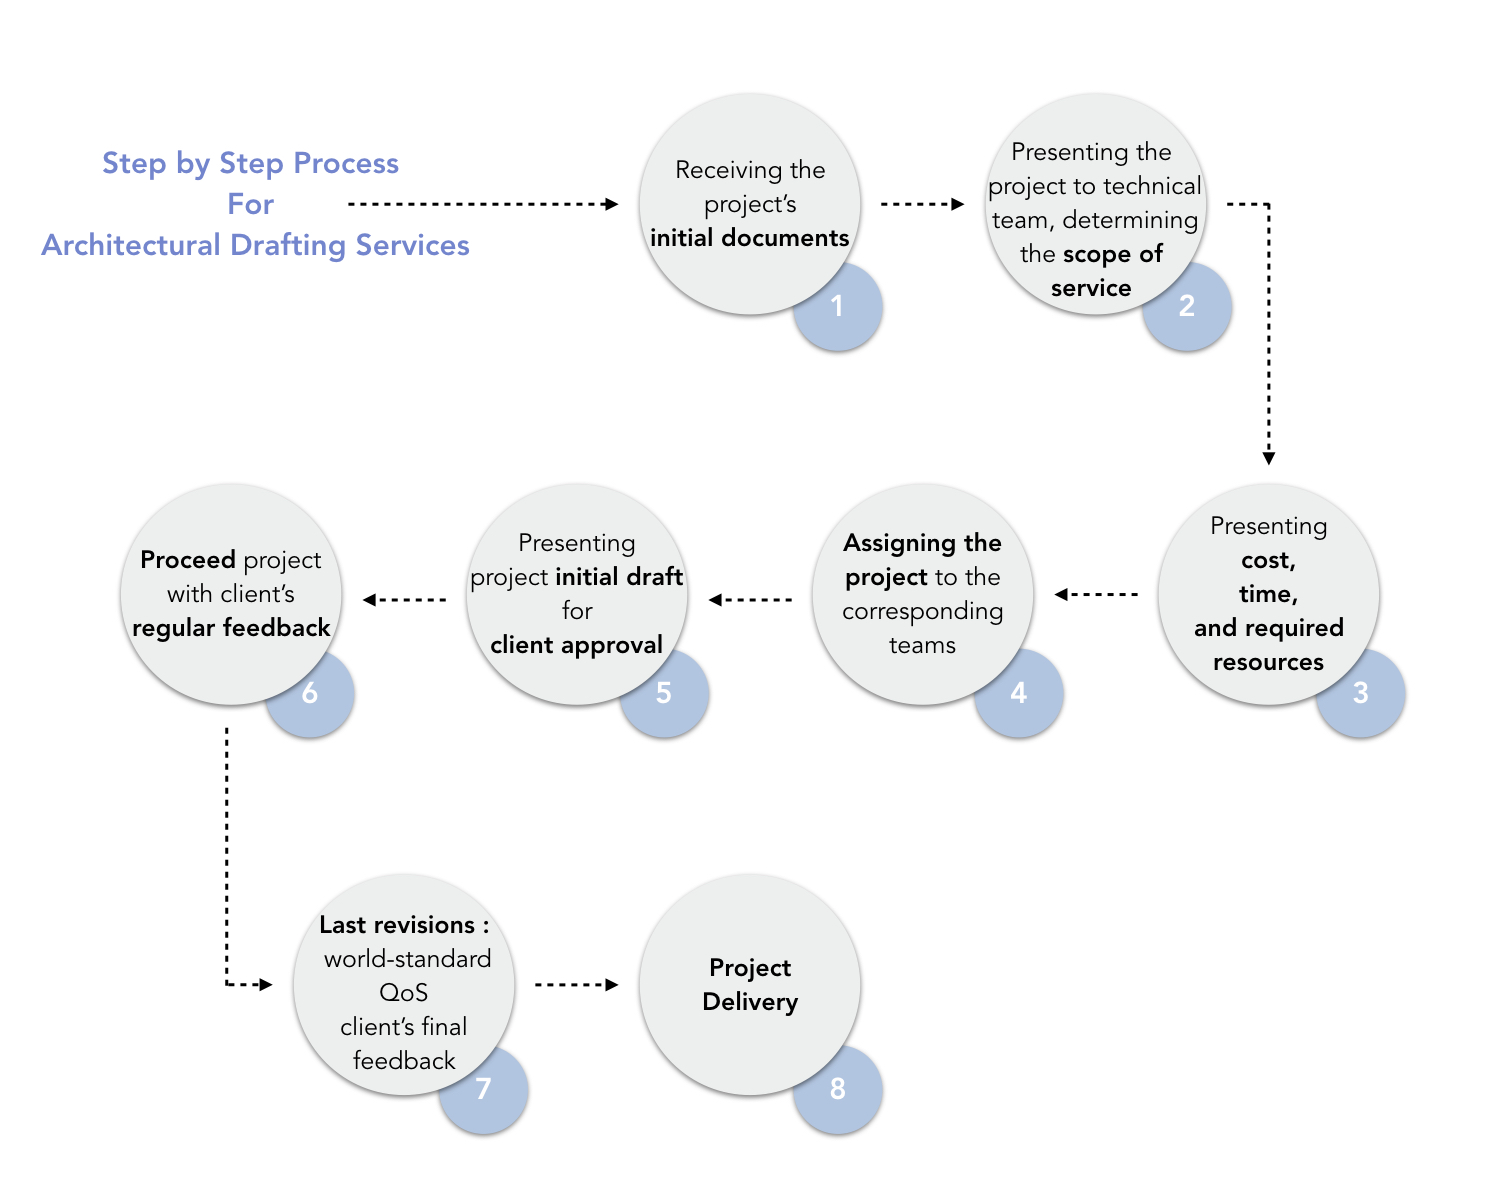 The Step by Step Process Diagram for architectural 3D services